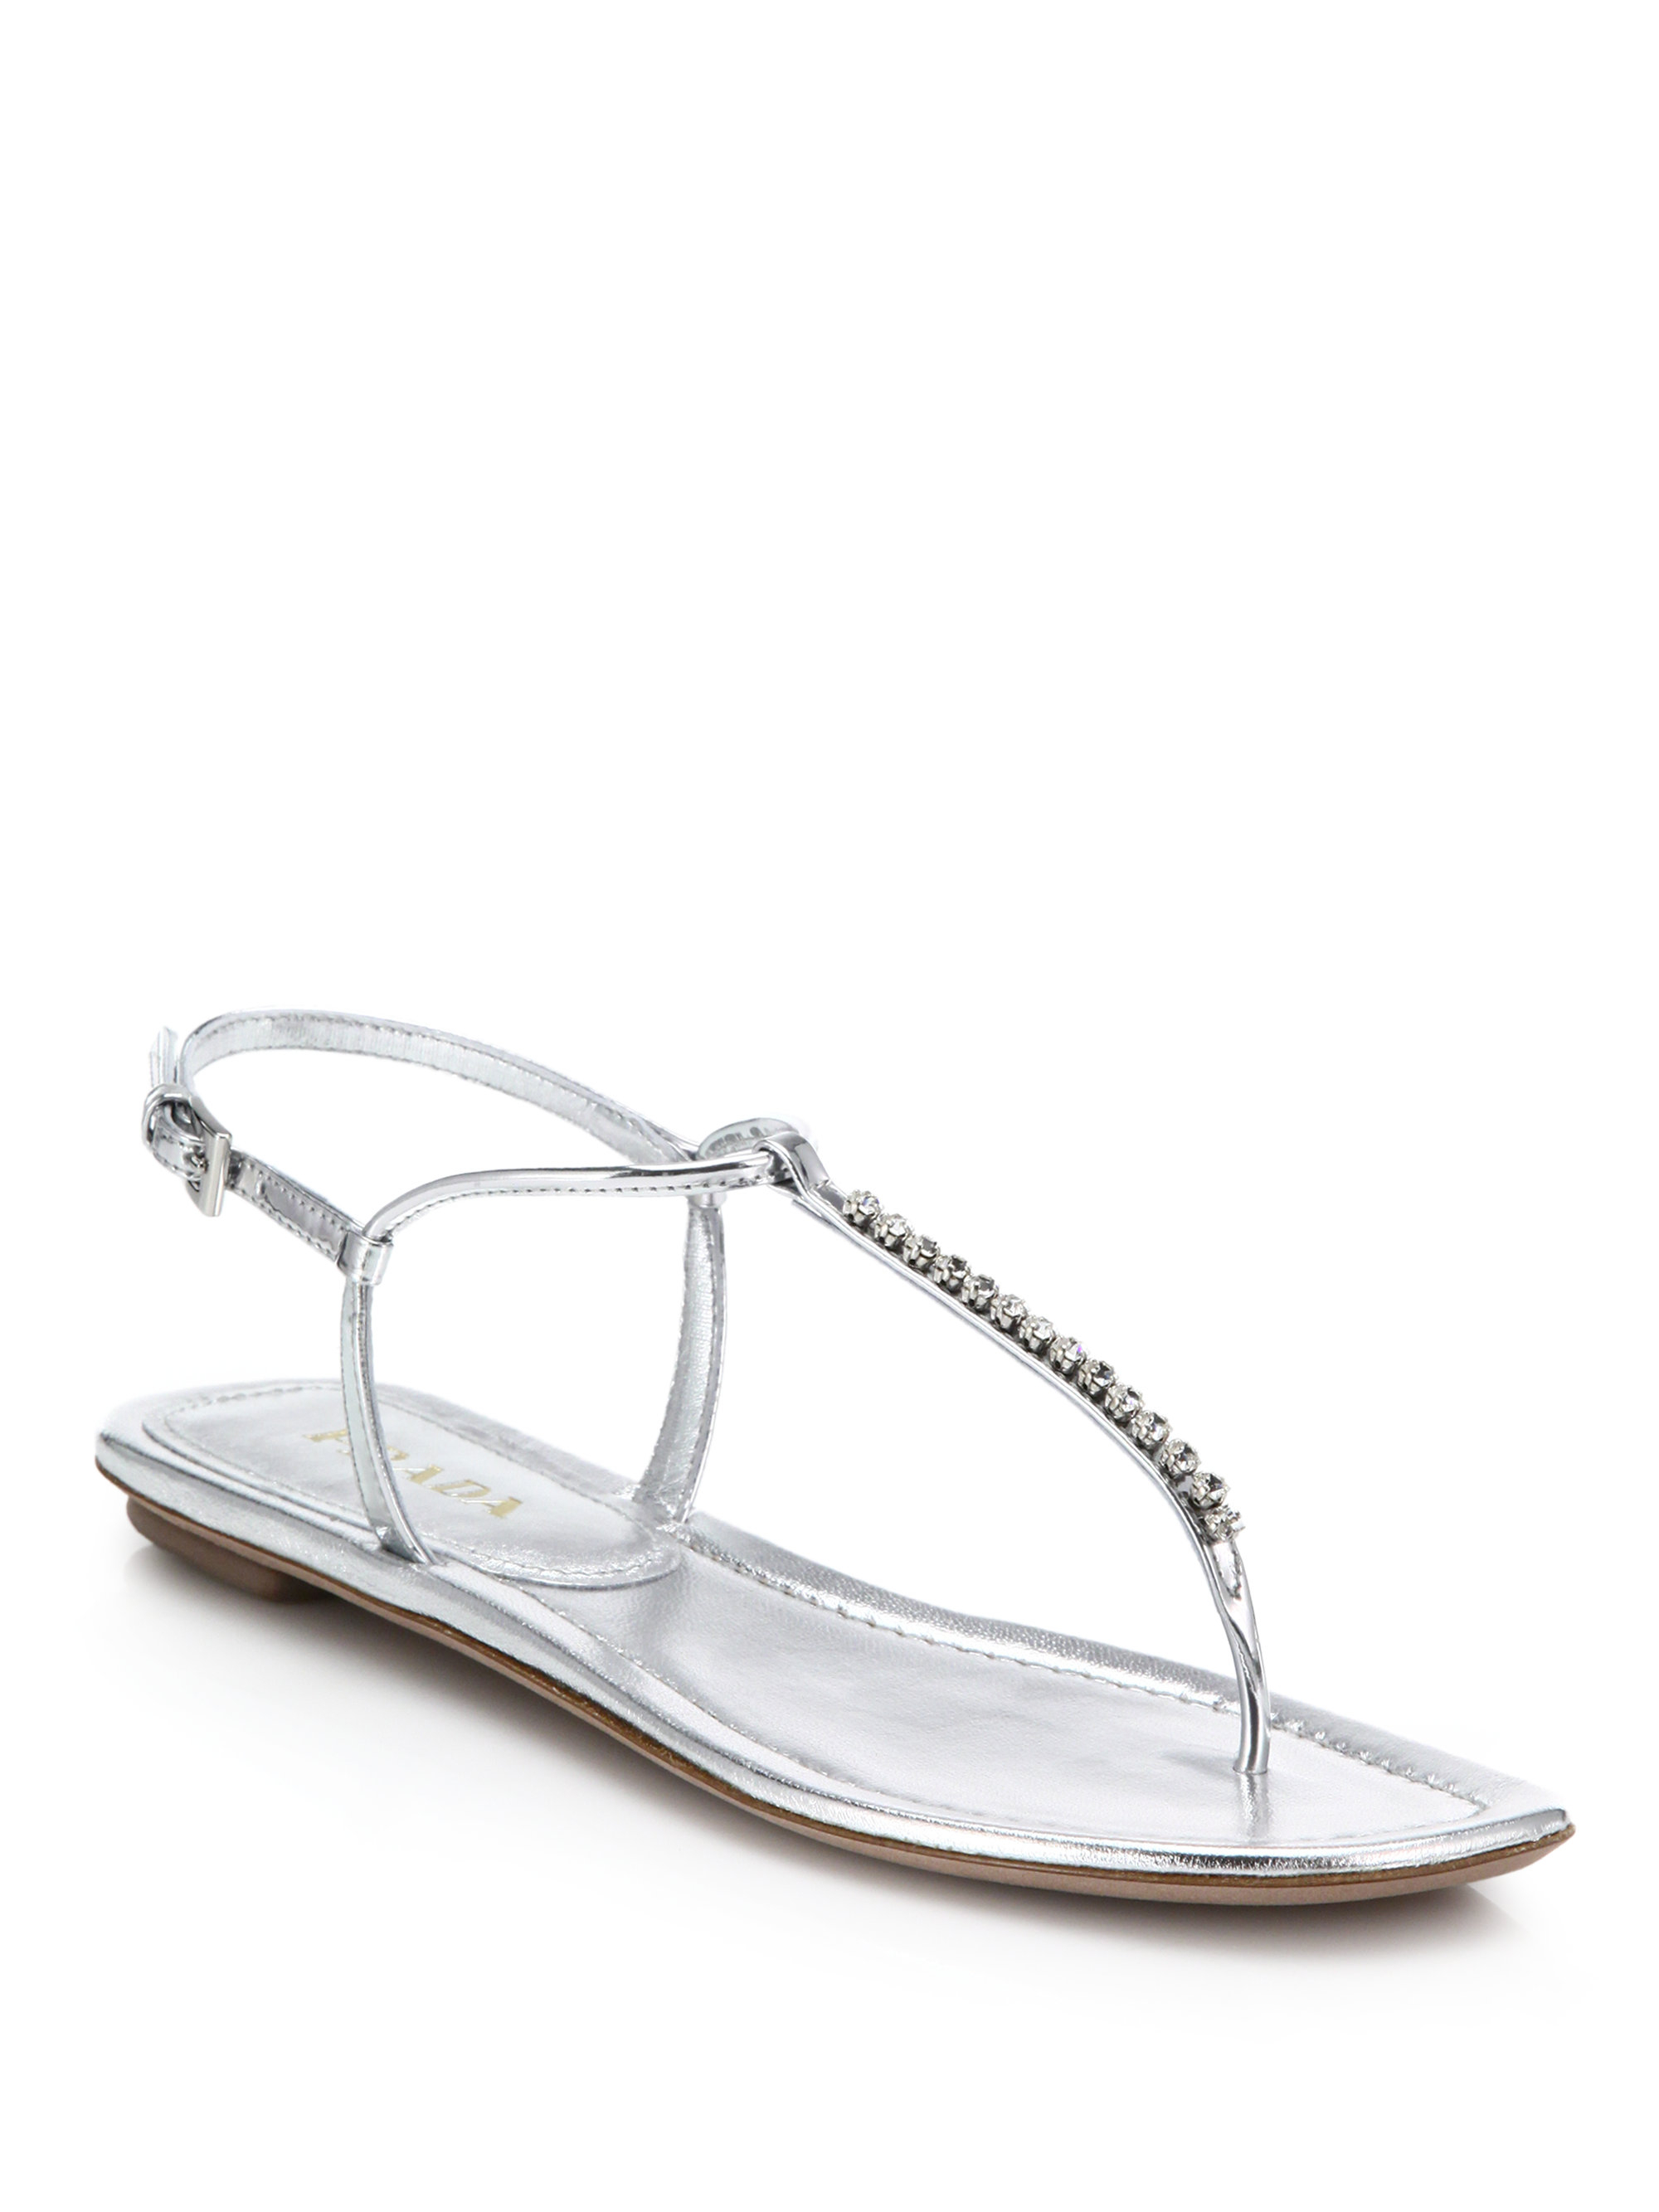 8439564b5a4 Lyst - Prada Swarovski Crystal Flat Metallic Leather Sandals in Metallic